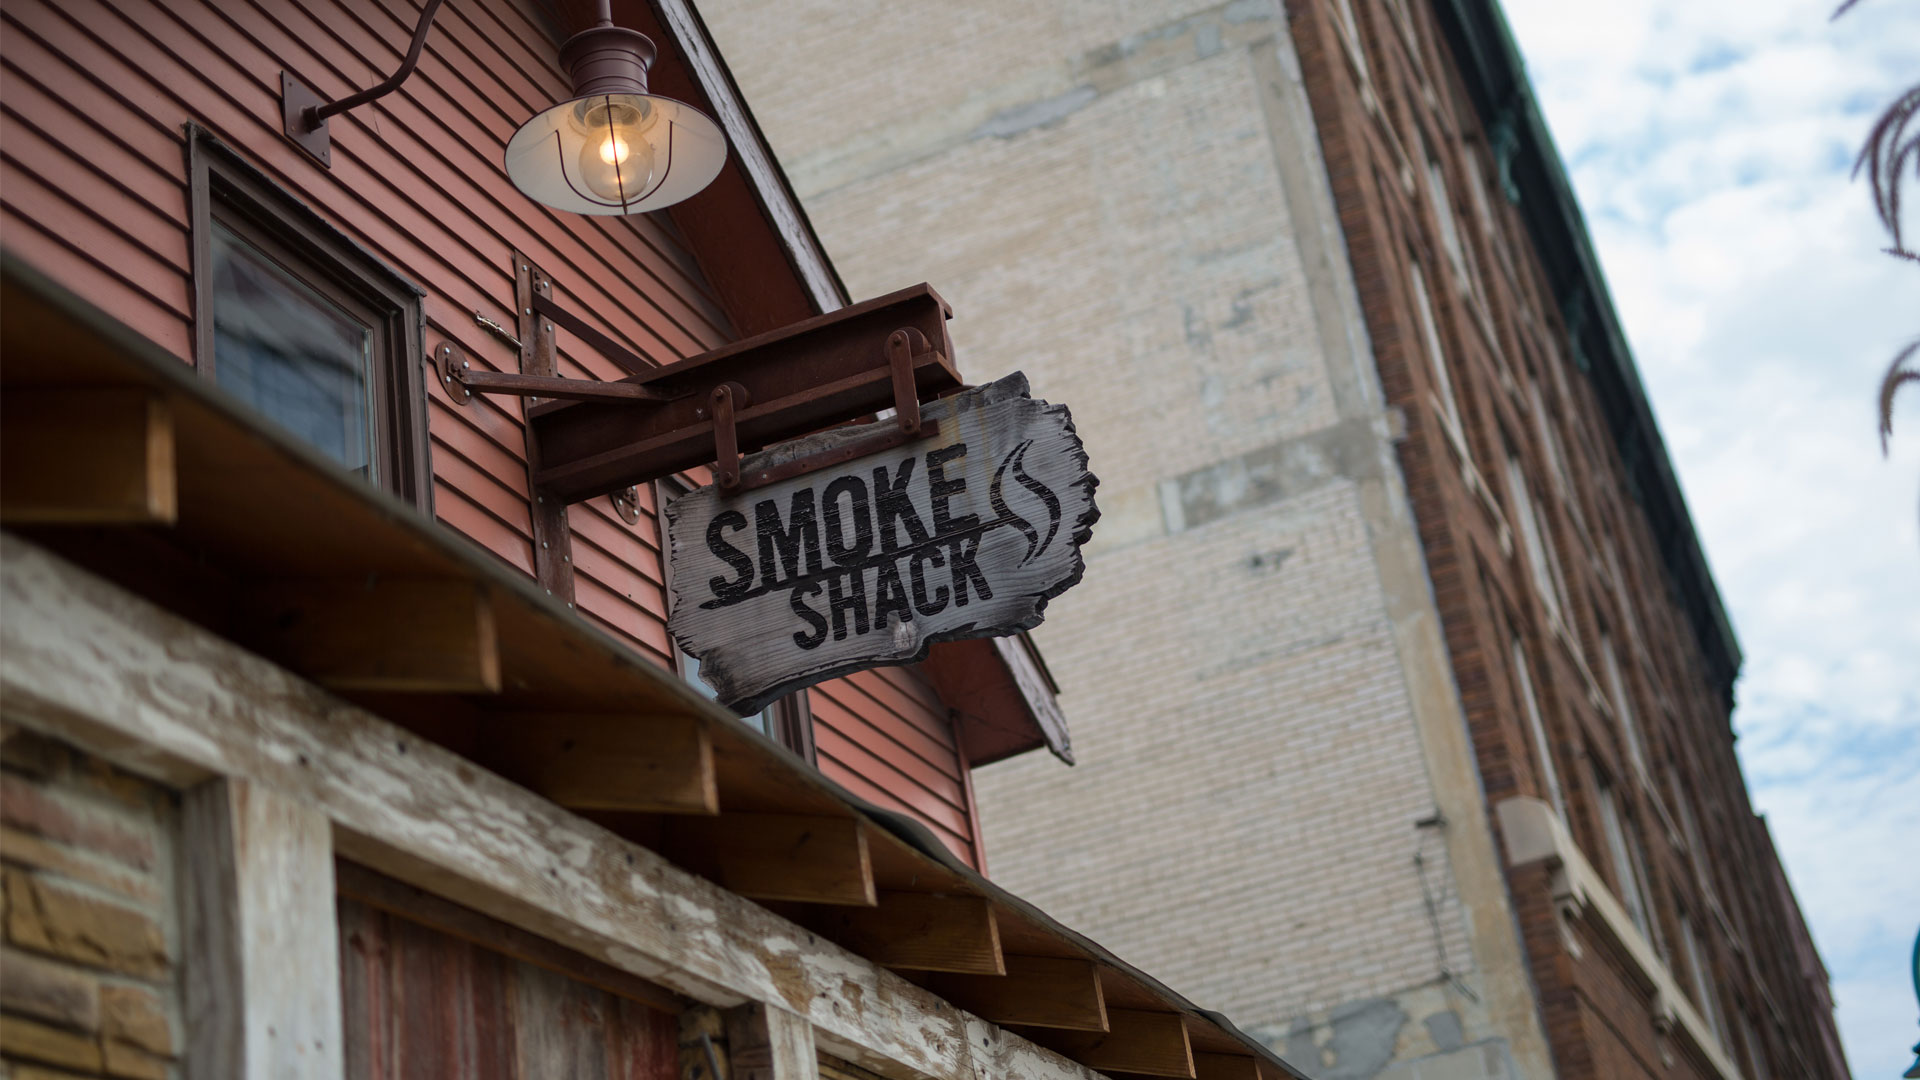 Smoke Shack Milwaukee